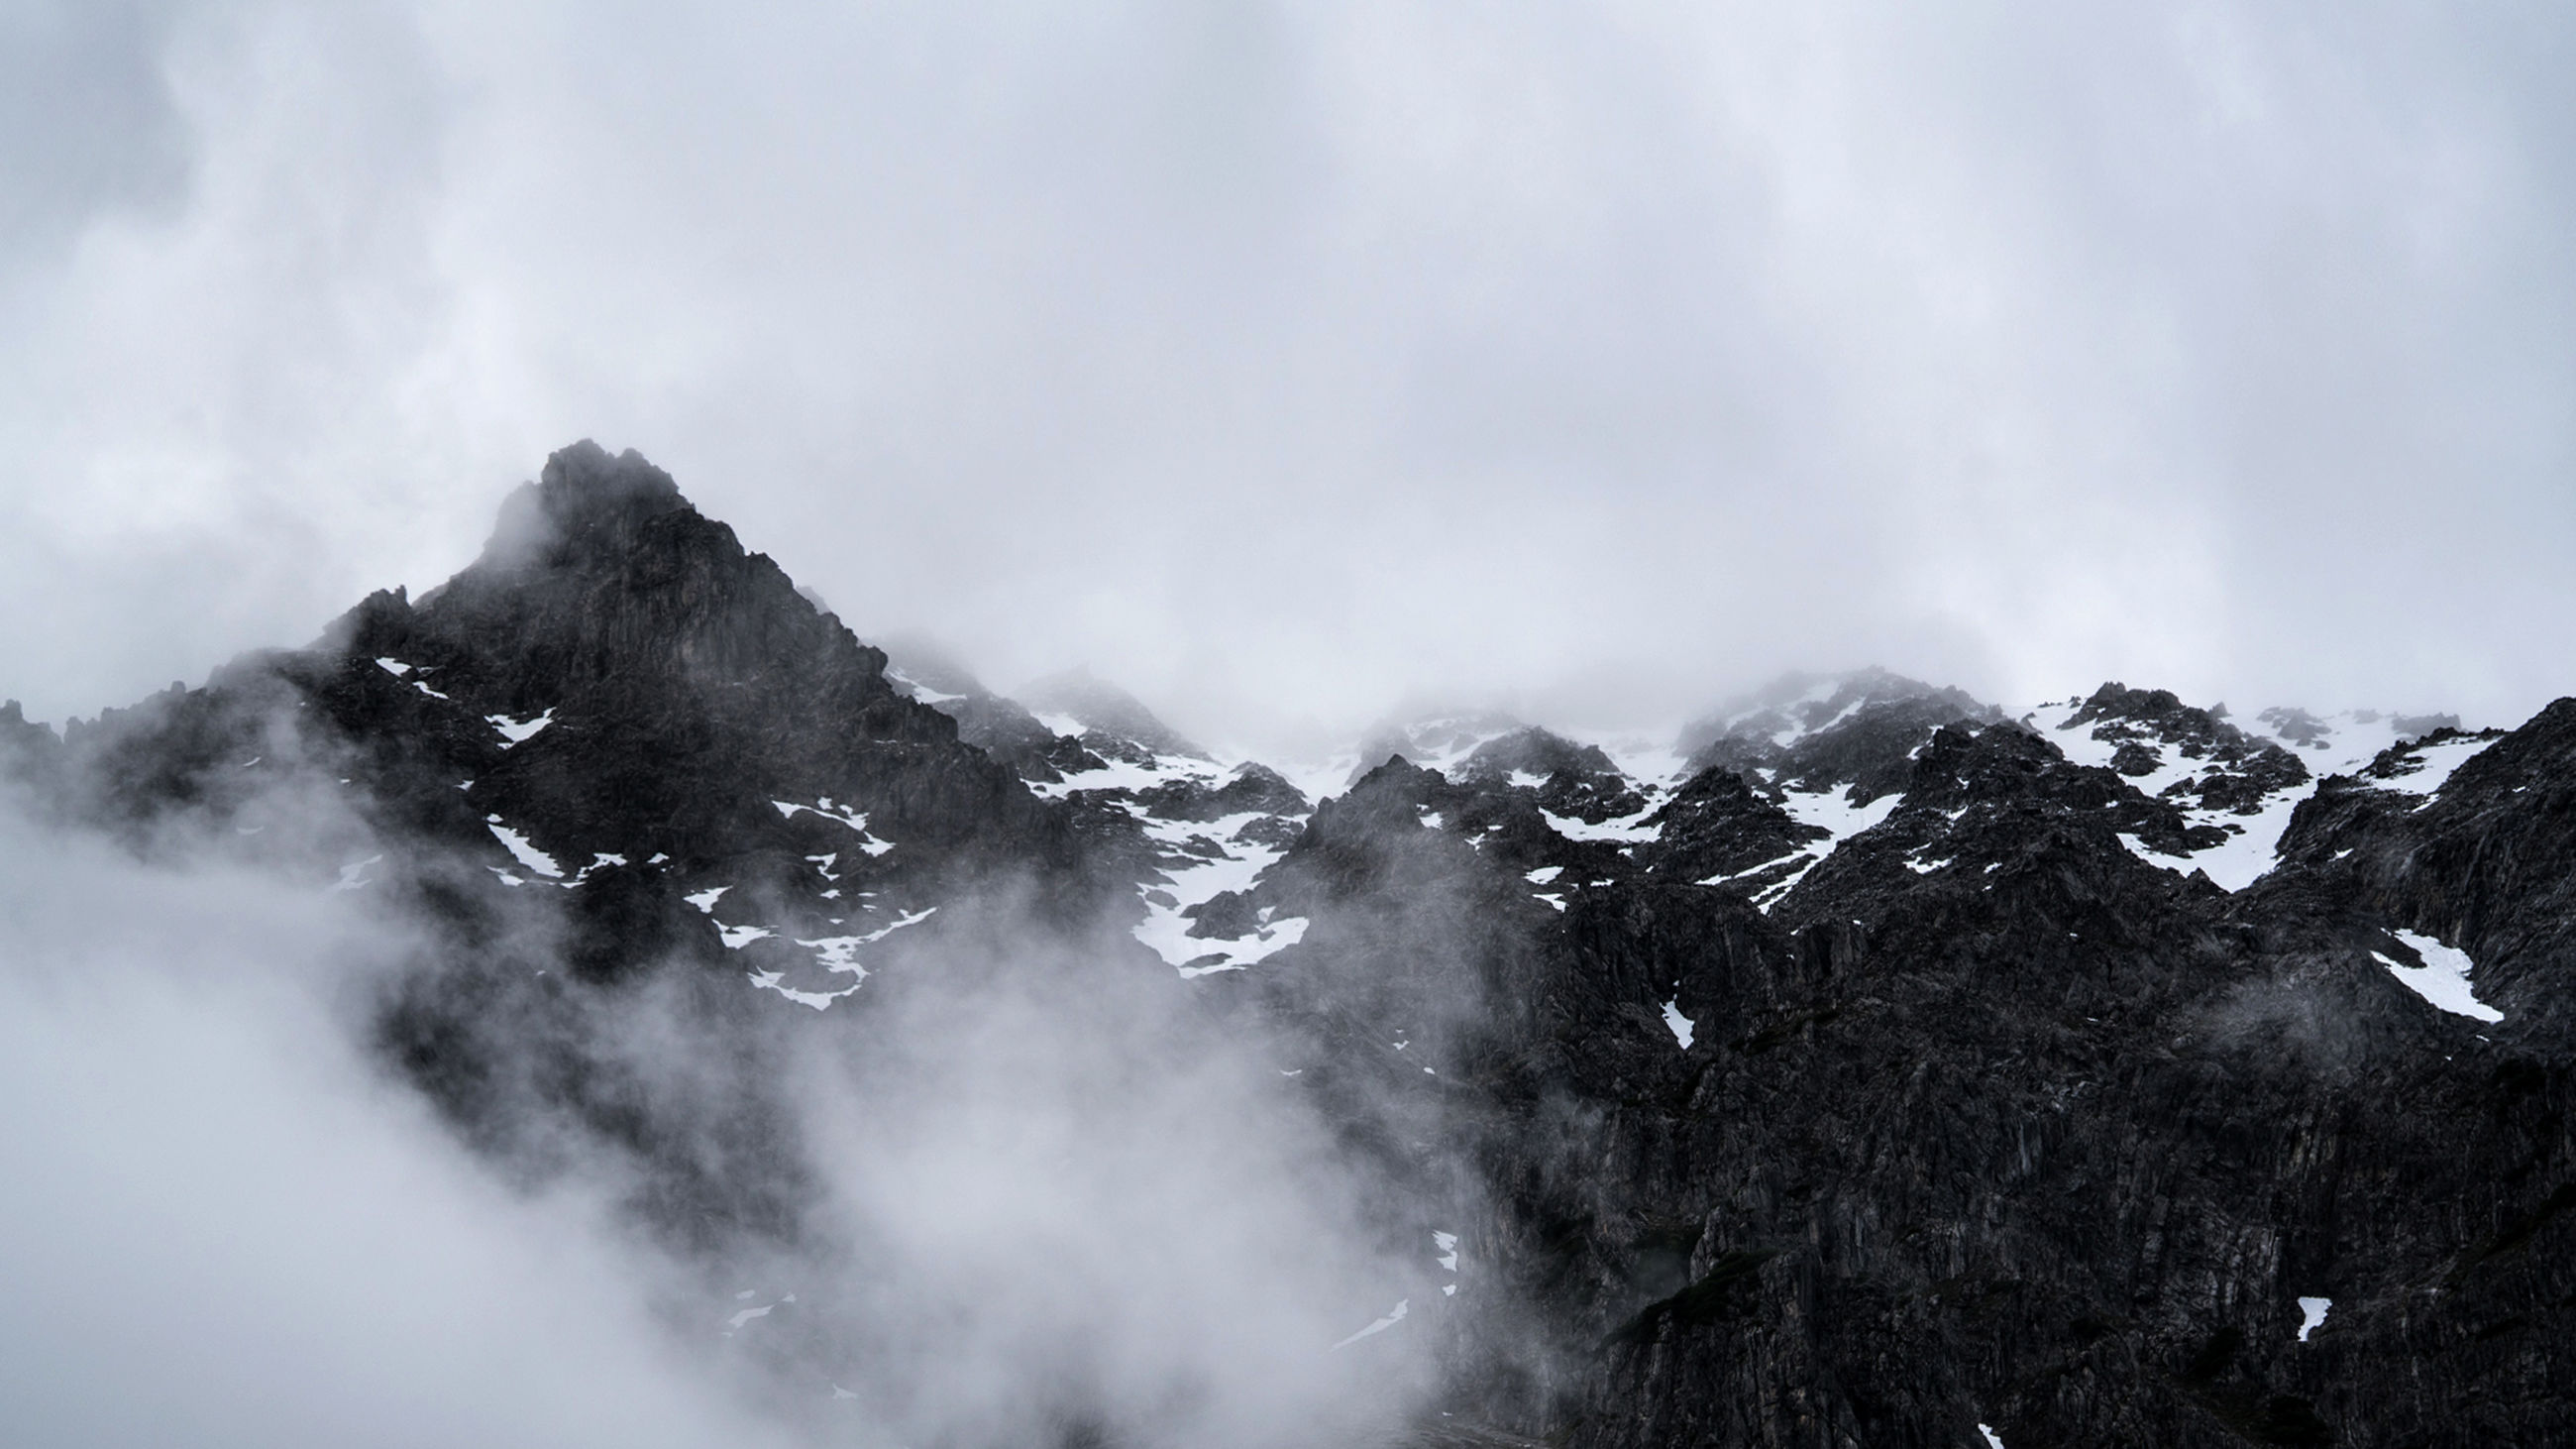 mountain, snow, nature, winter, beauty in nature, cold temperature, sky, scenics, outdoors, tranquility, day, tranquil scene, no people, cloud - sky, mountain range